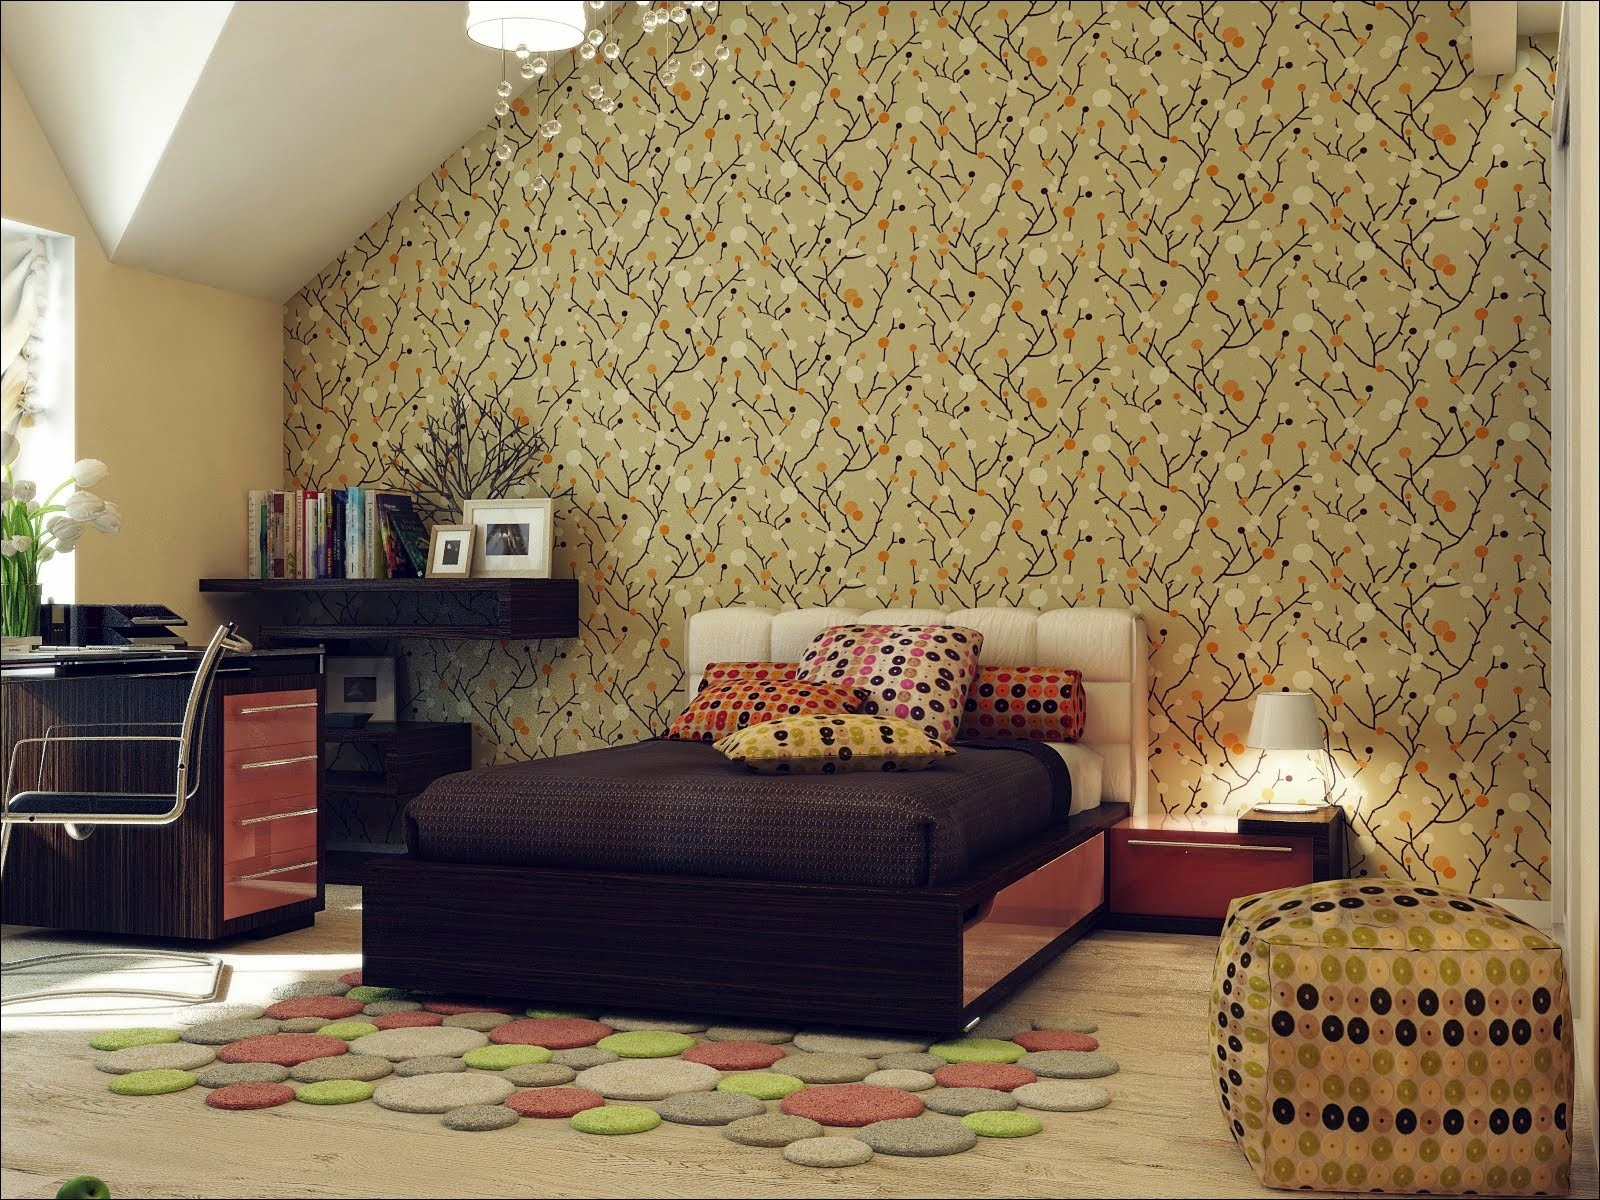 Wallpaper Room Design photo - 5